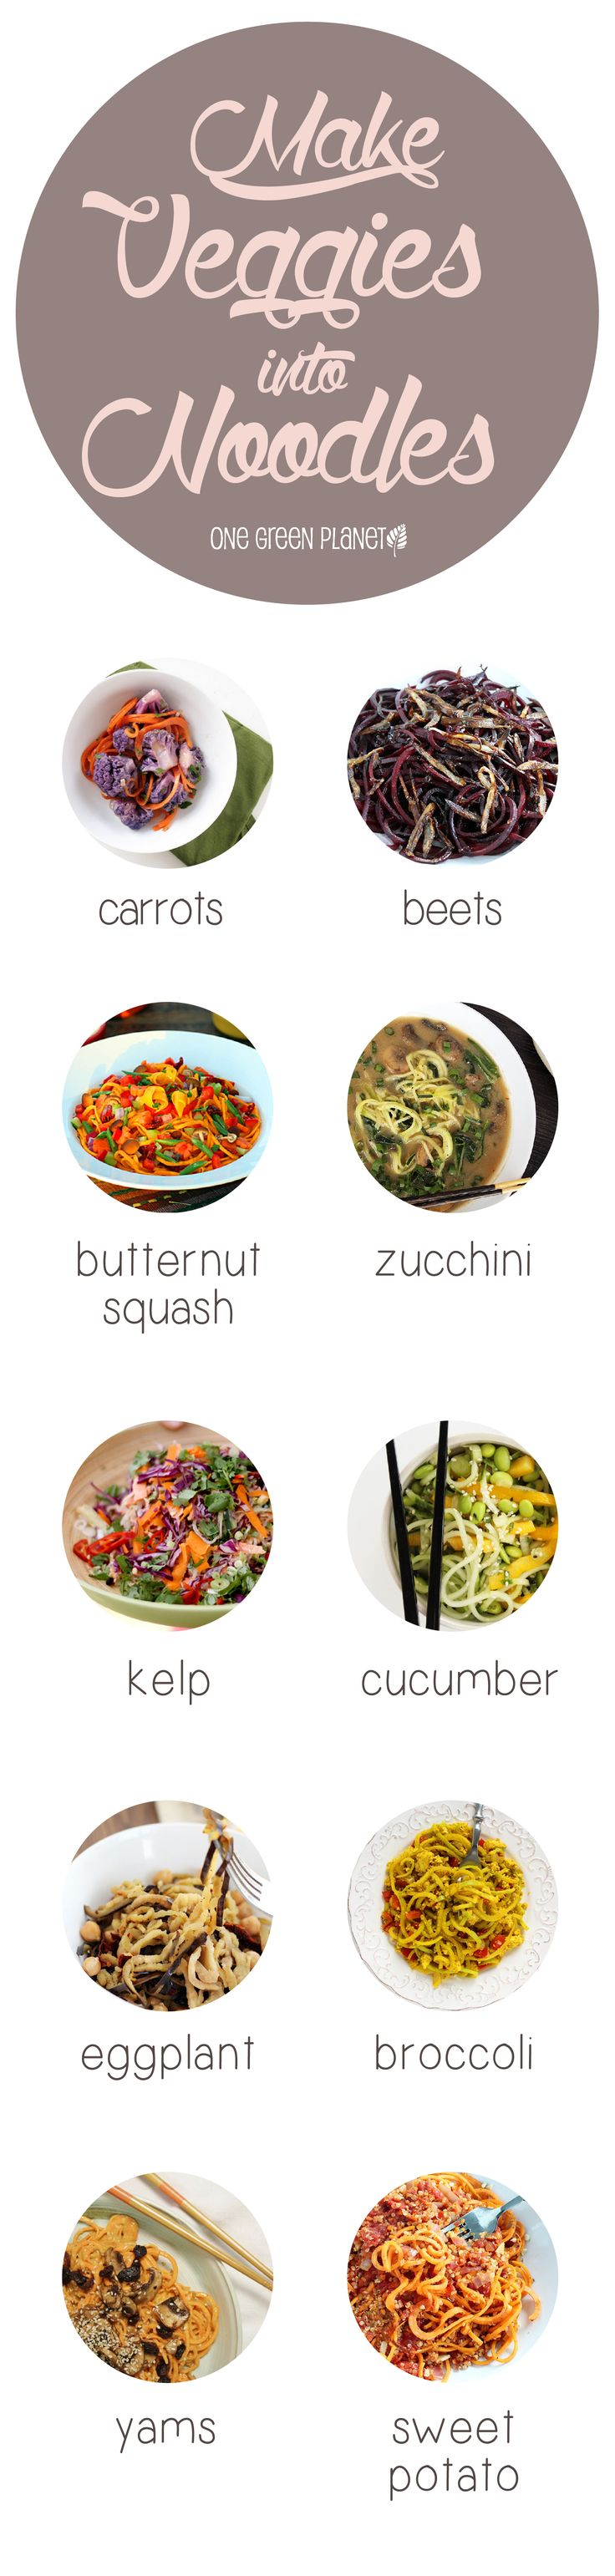 http://www.idecz.com/category/Vegetable-Spiralizer/ Make veggies into noodles. Assortment of option here.